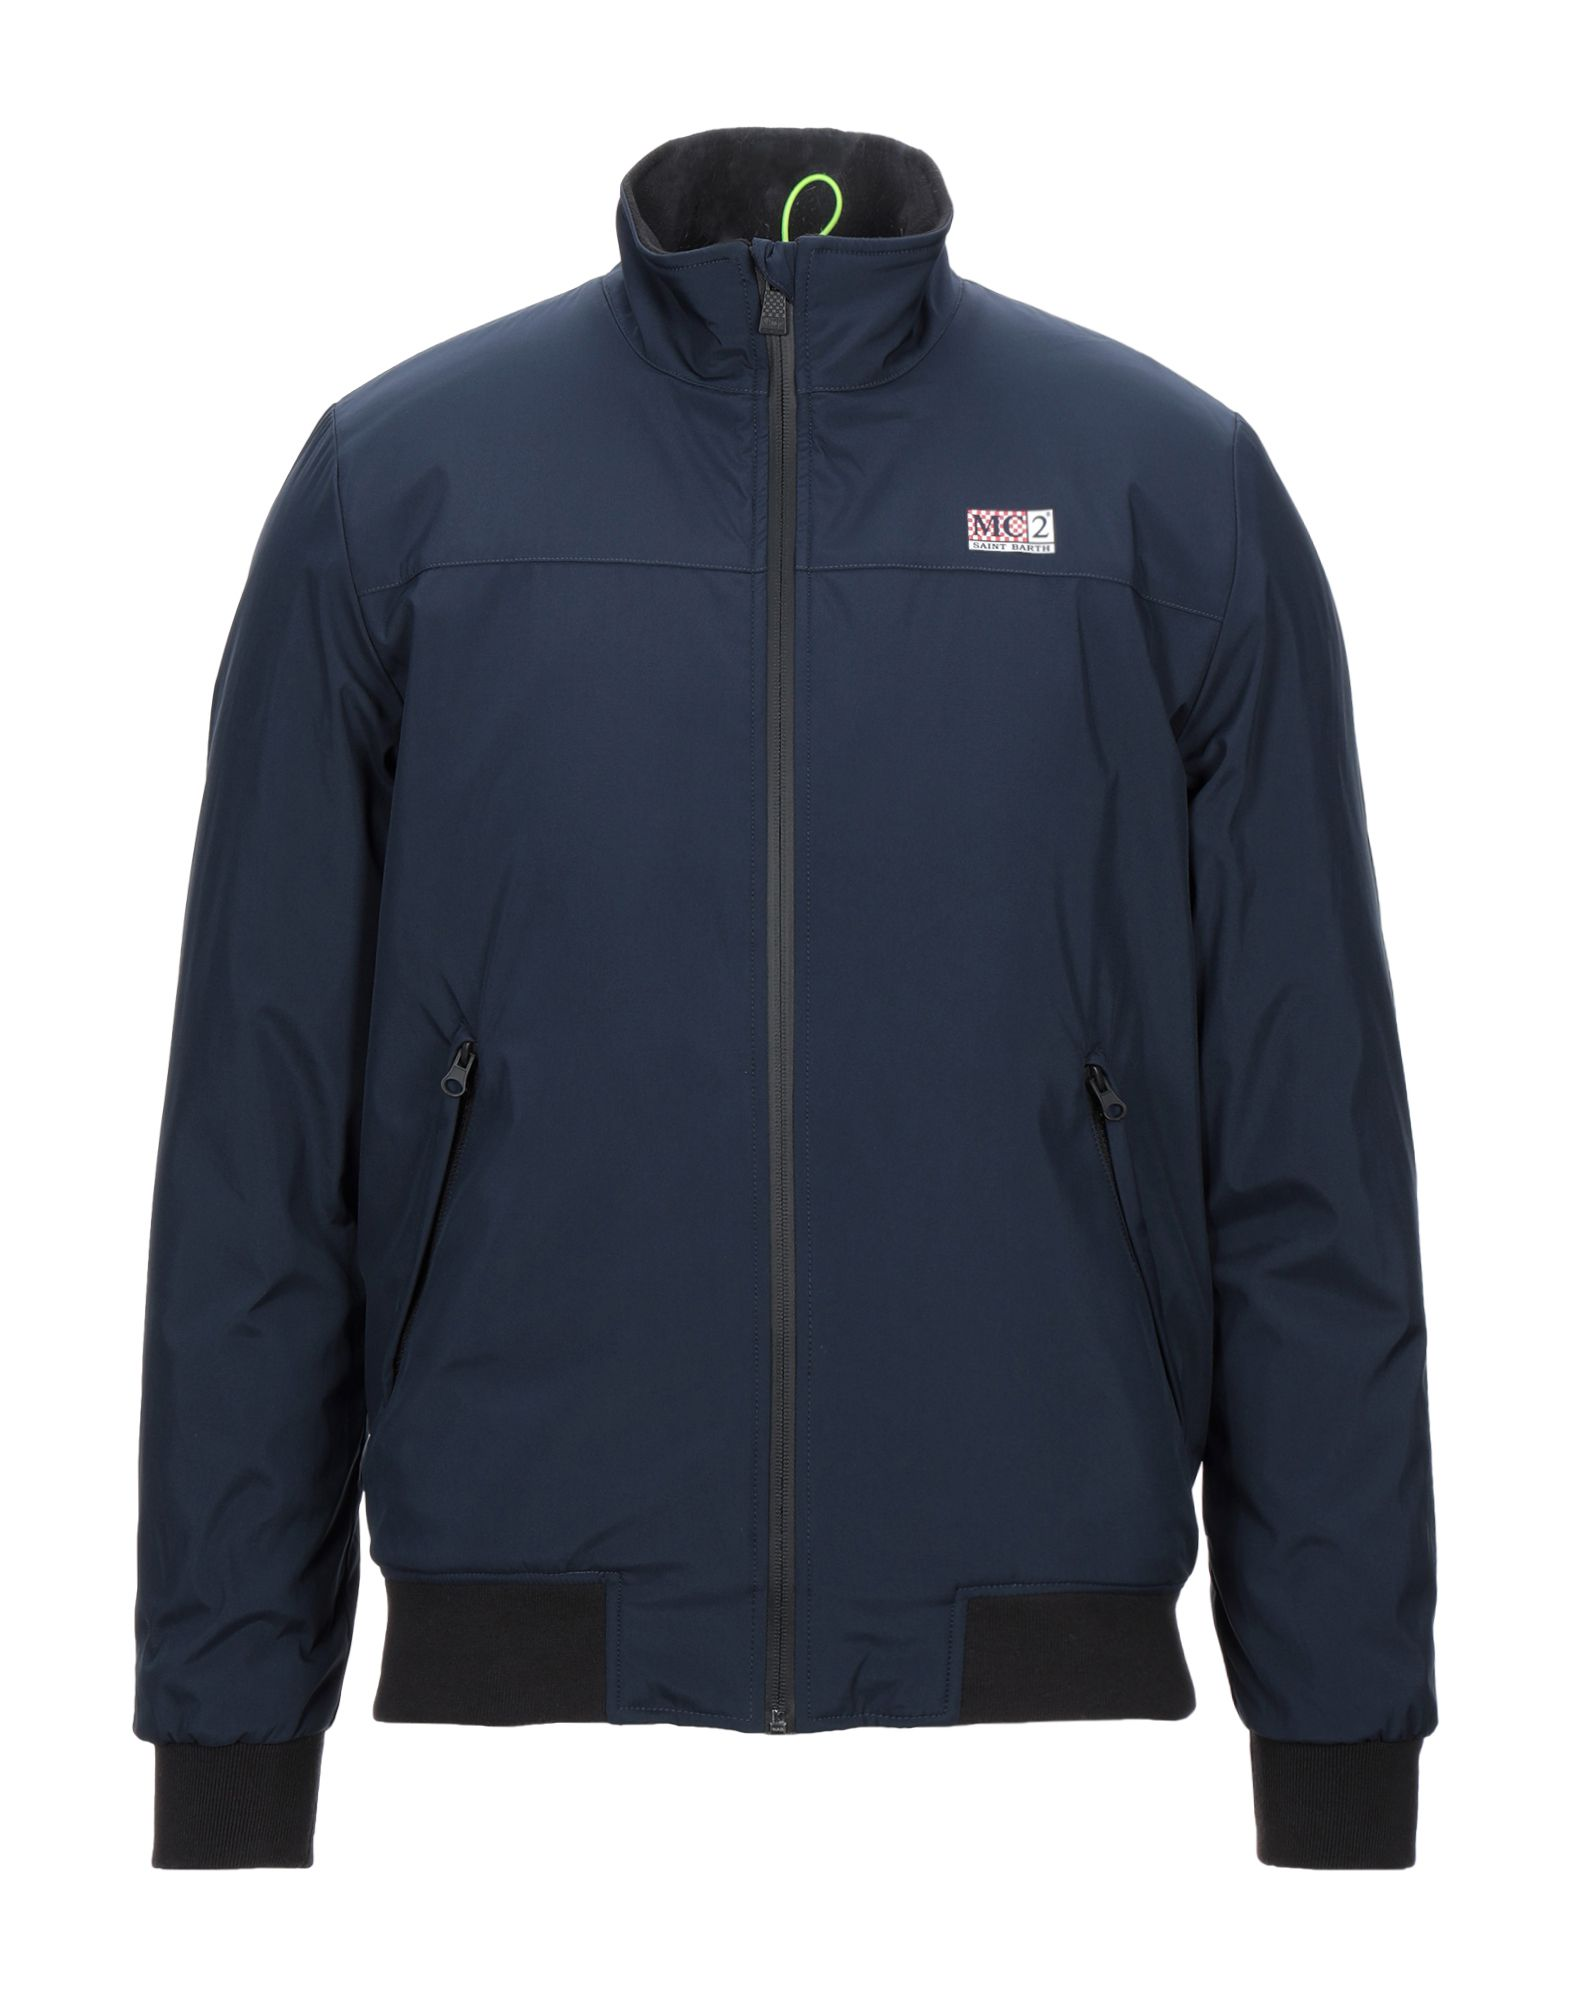 MC2 SAINT BARTH Jackets. plain weave, logo, basic solid color, single-breasted, zipper closure, round collar, multipockets, long sleeves, faux fur inner. 100% Polyester